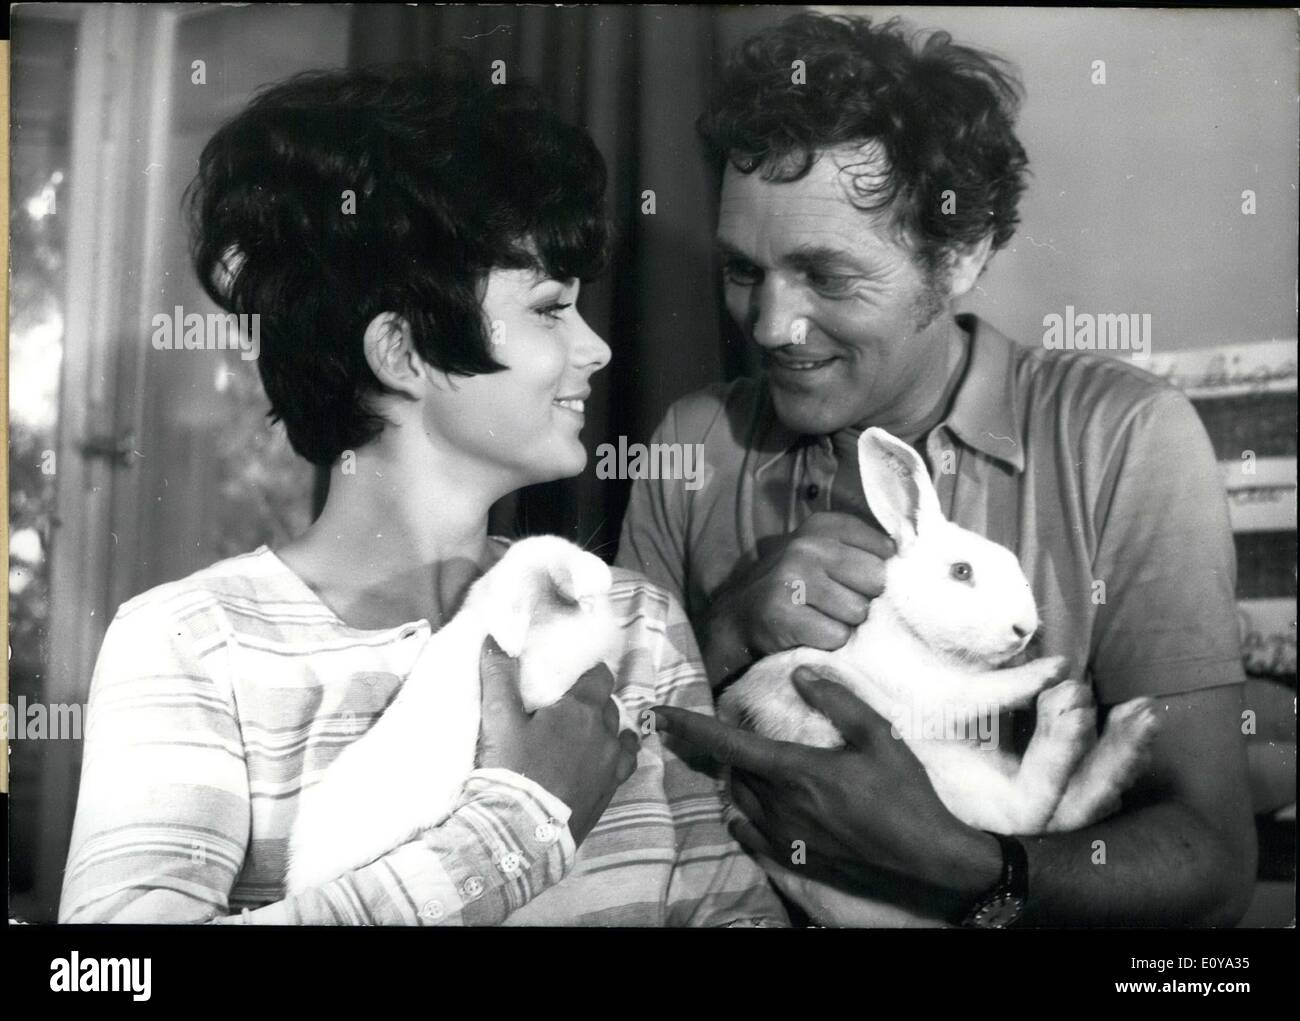 Jun. 25, 1969 - Harald Leipnitz and Uschi Glas are pictured here holding bunny rabbits. Leipnitz is starring along with Glas in - Stock Image